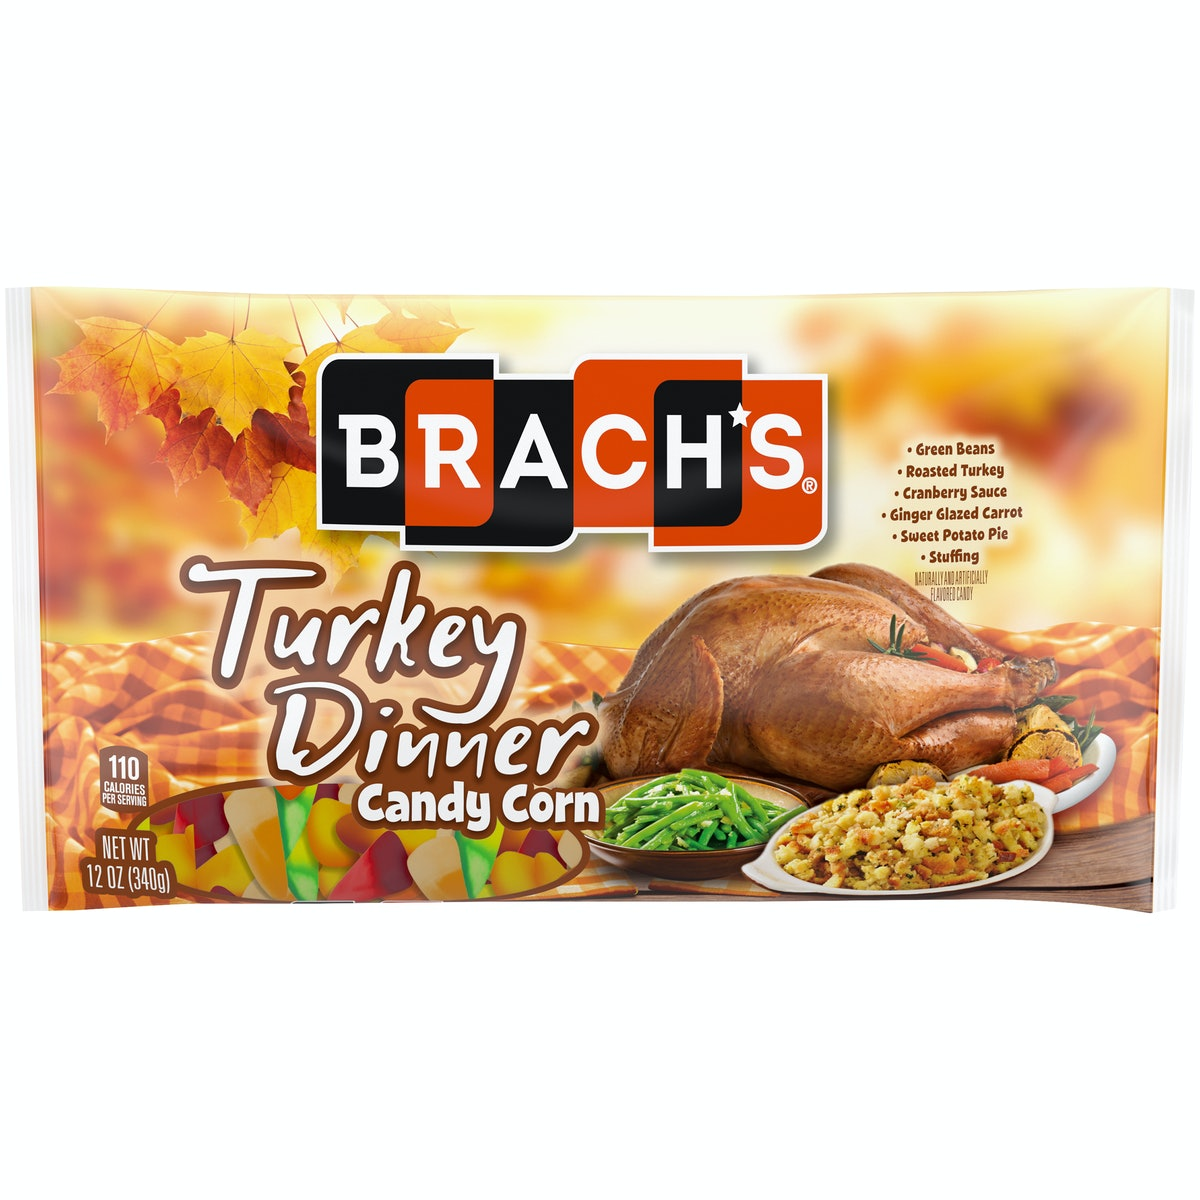 Brach's Turkey Dinner Candy Corn is currently available at Walgreens.